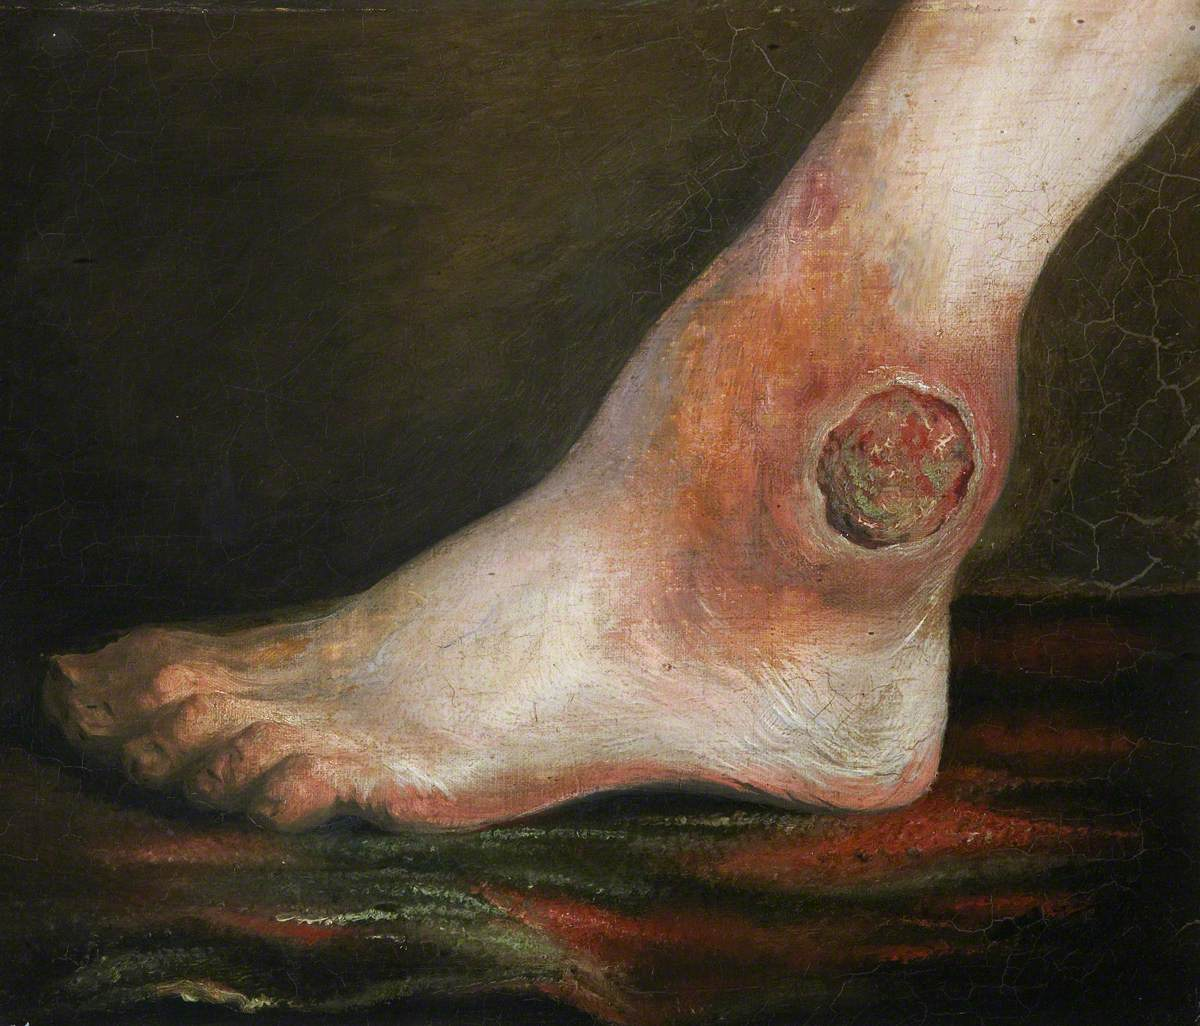 The Wounded following the Battle of Corunna: Gunshot Wound of Ankle Joint